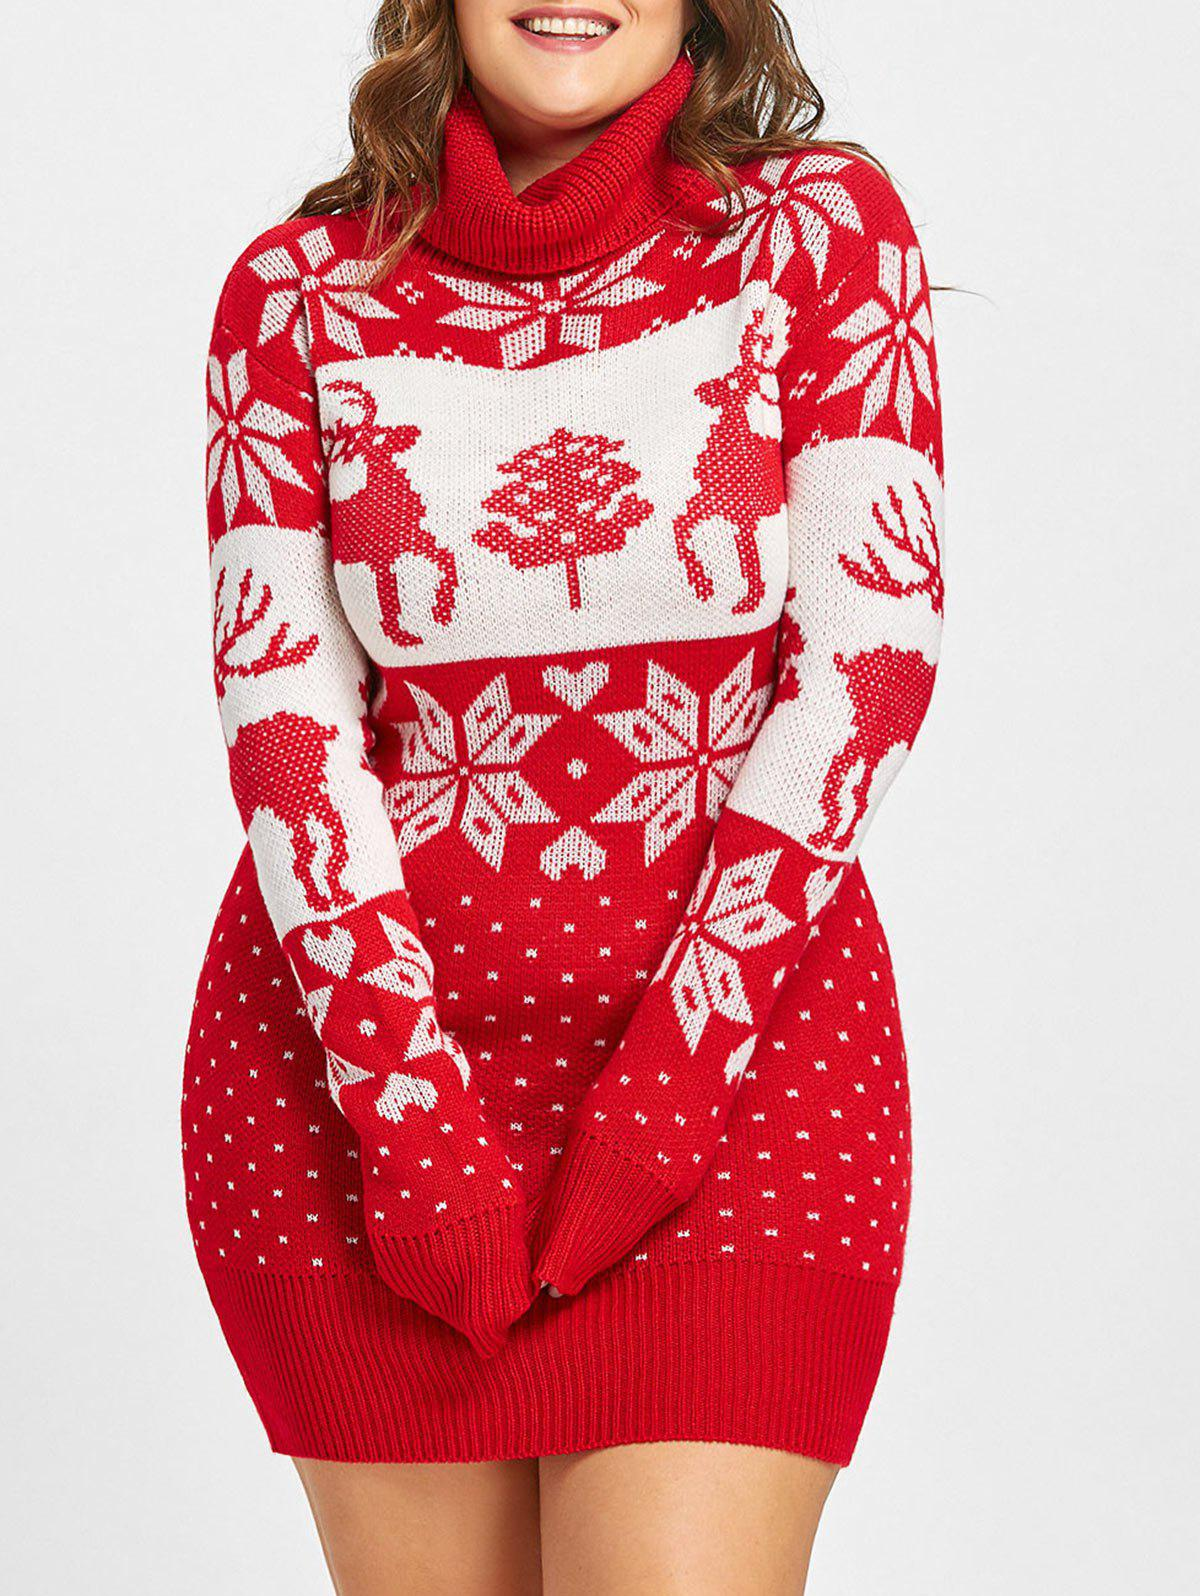 Christmas Snowflake Elk Jacquard Plus Size SweaterWOMEN<br><br>Size: XL; Color: RED; Type: Pullovers; Material: Acrylic; Sleeve Length: Full; Collar: Turtleneck; Style: Fashion; Season: Fall,Winter; Pattern Type: Animal; Weight: 0.5100kg; Package Contents: 1 x Sweater;